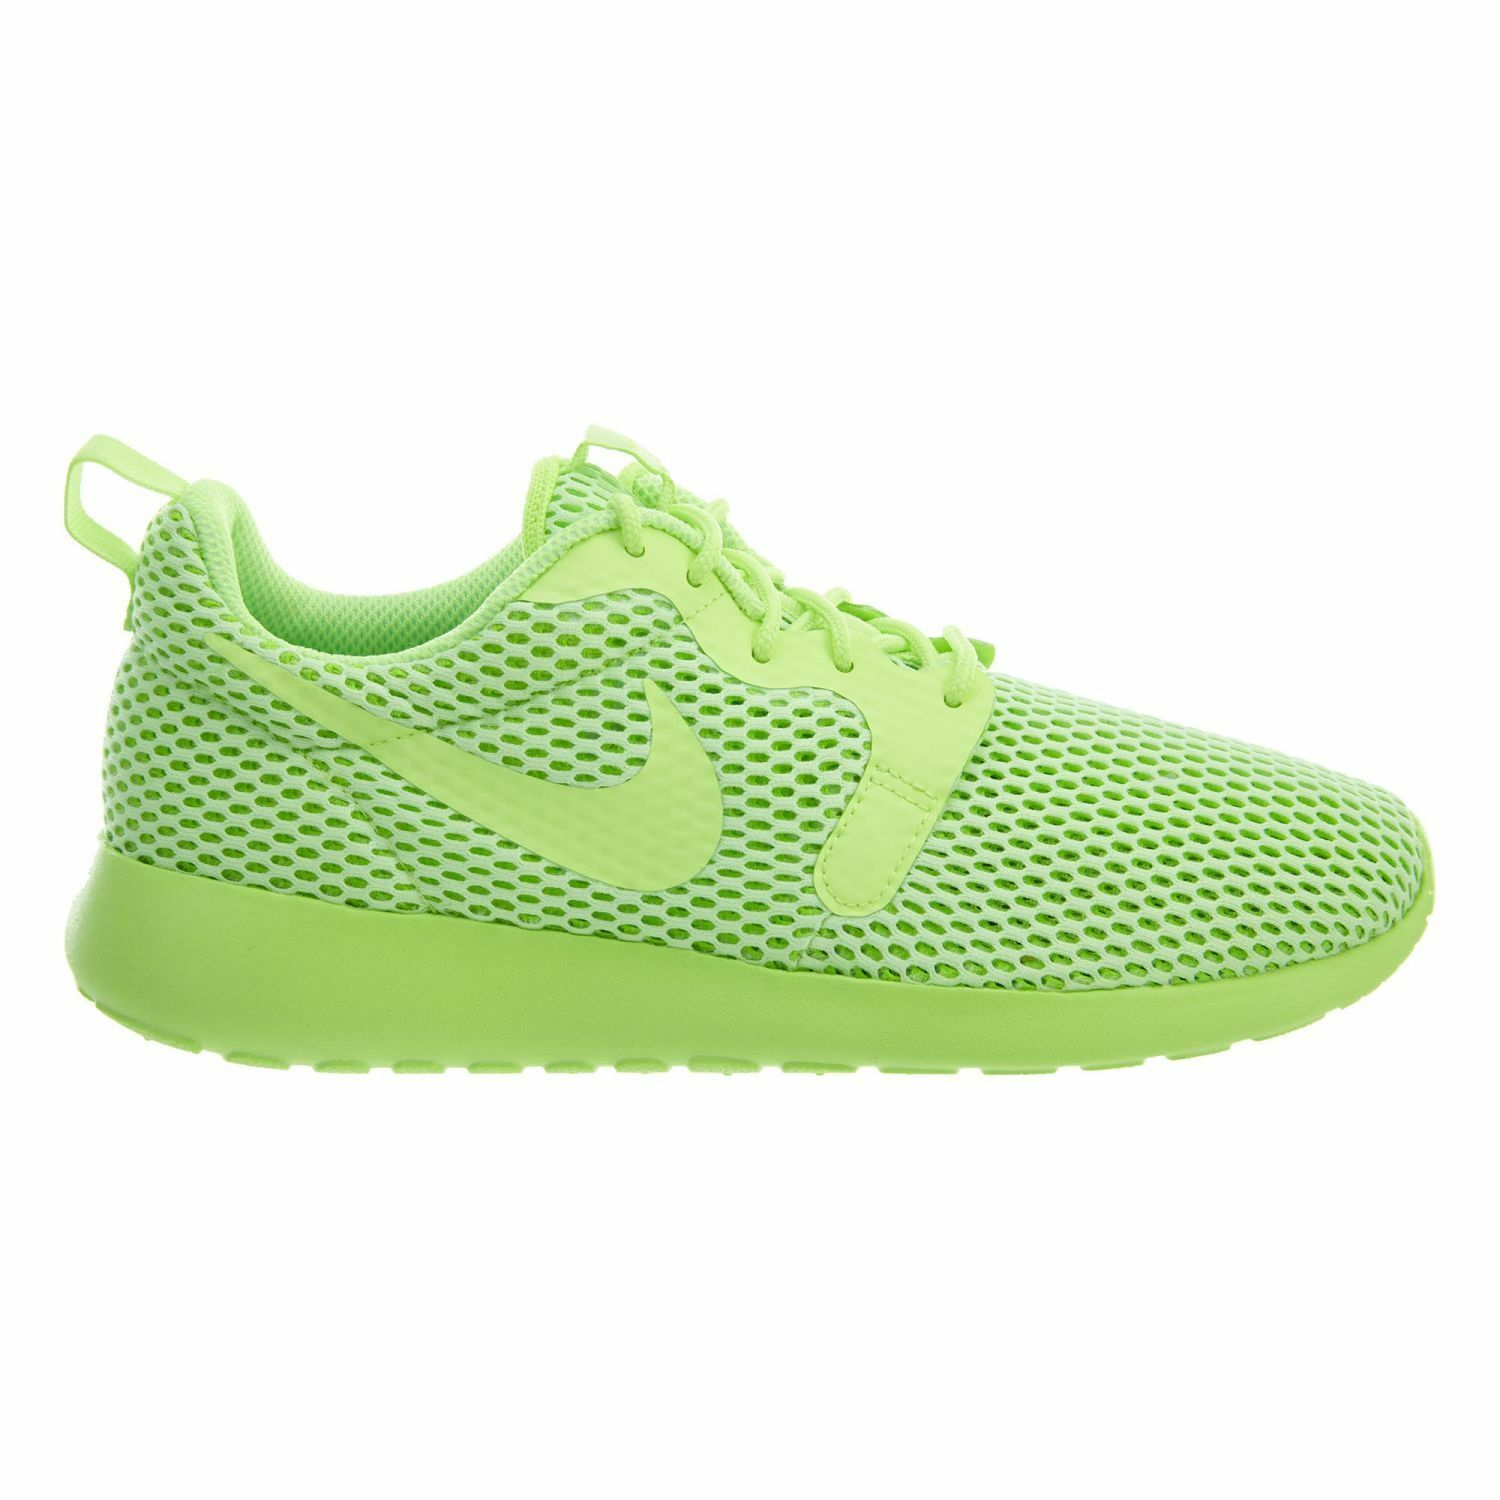 Nike Roshe One Hyp BR Womens 833826-300 Ghost Green Running shoes Size 10.5